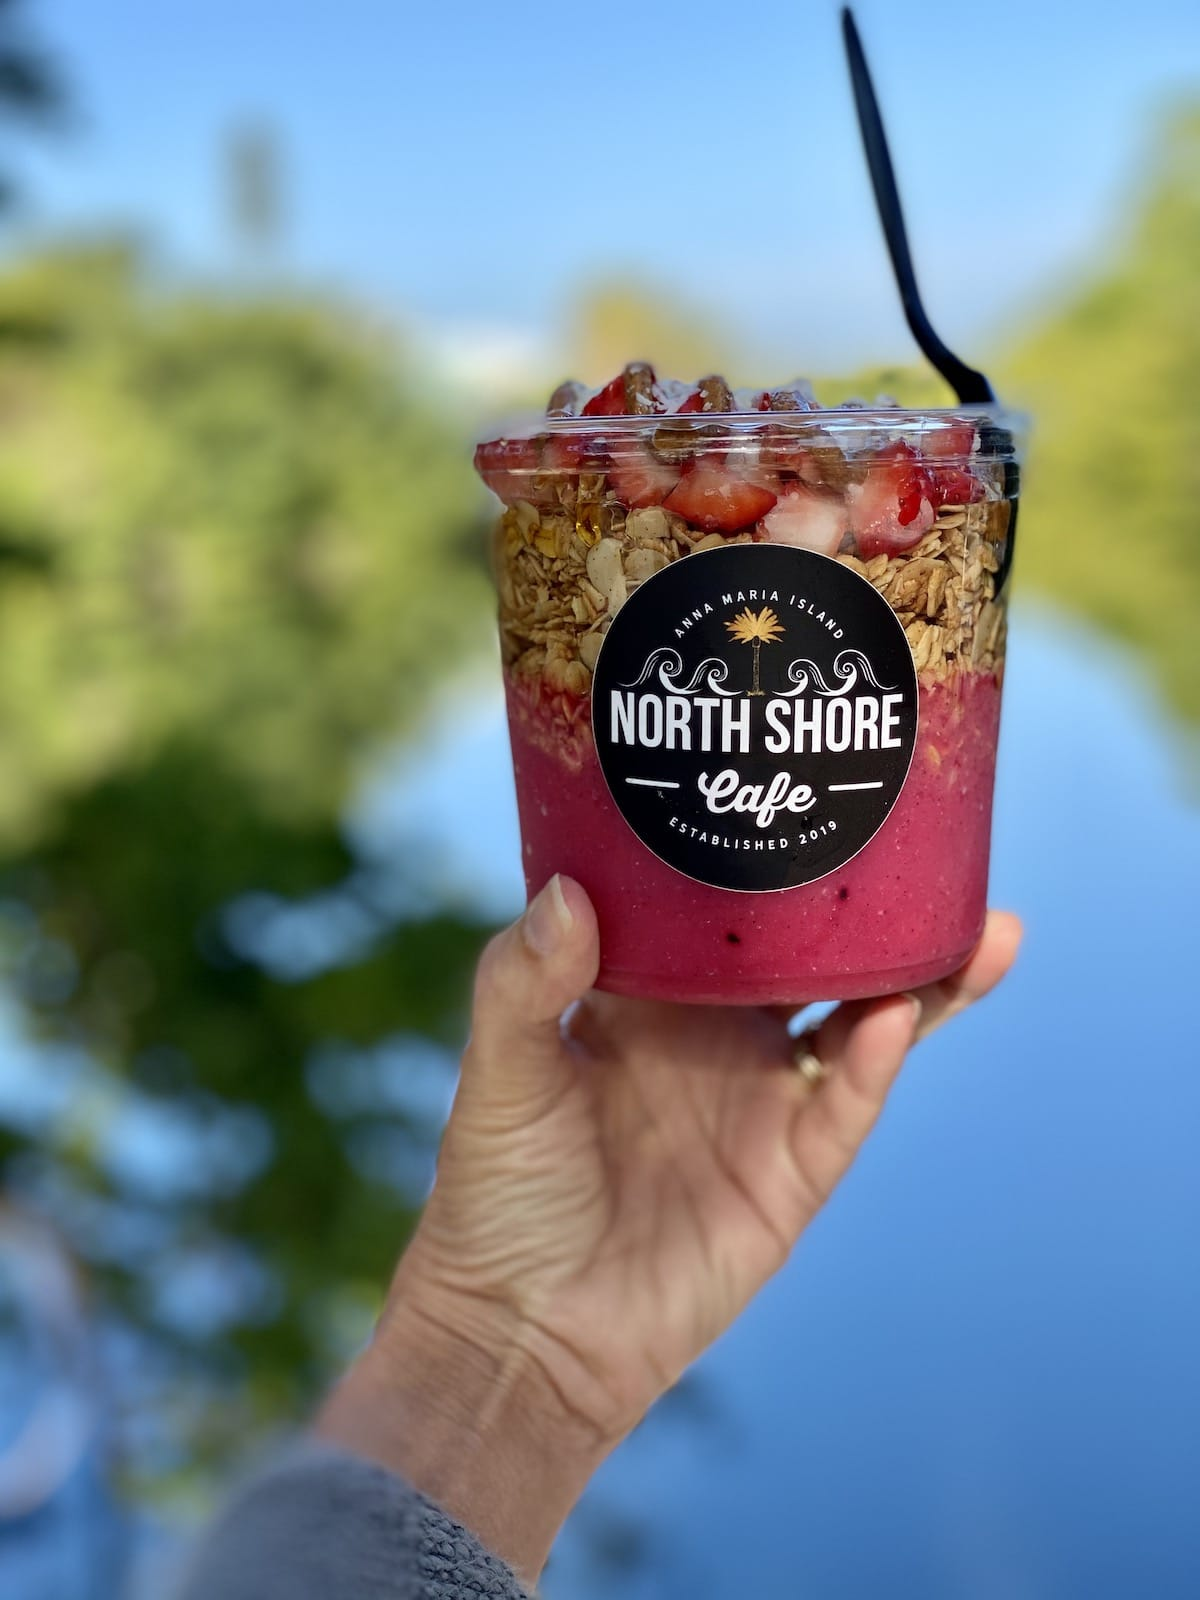 North Shore Cafe breakfast bowl.